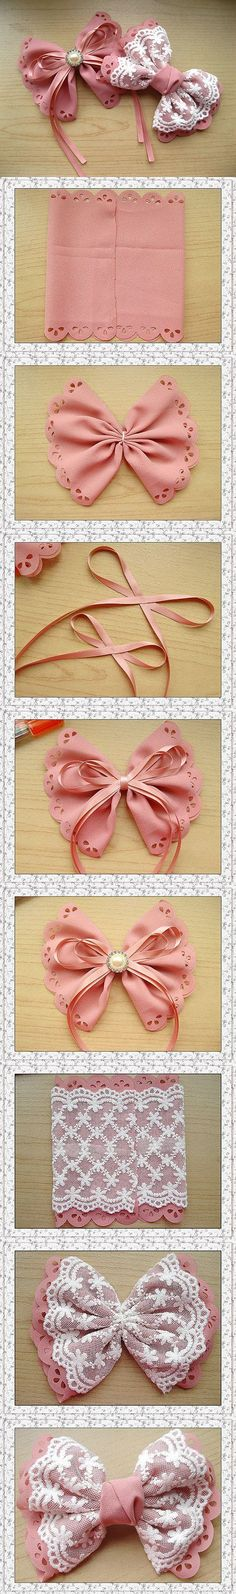 DIY Easy Lace Bow